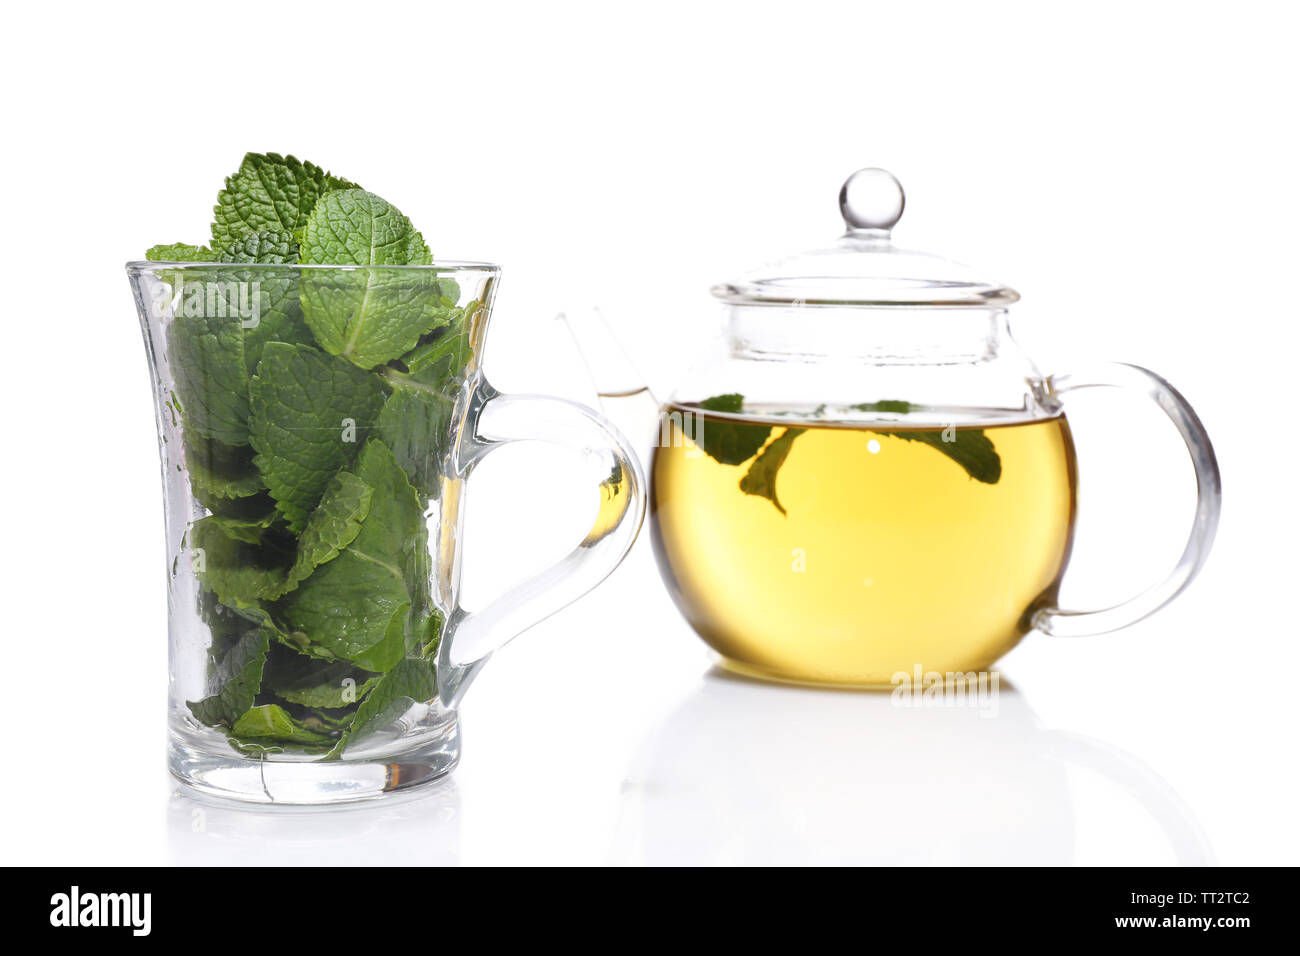 Composition of fresh mint leaves in glass cup and mint tea in teapot  isolated on white - Stock Image